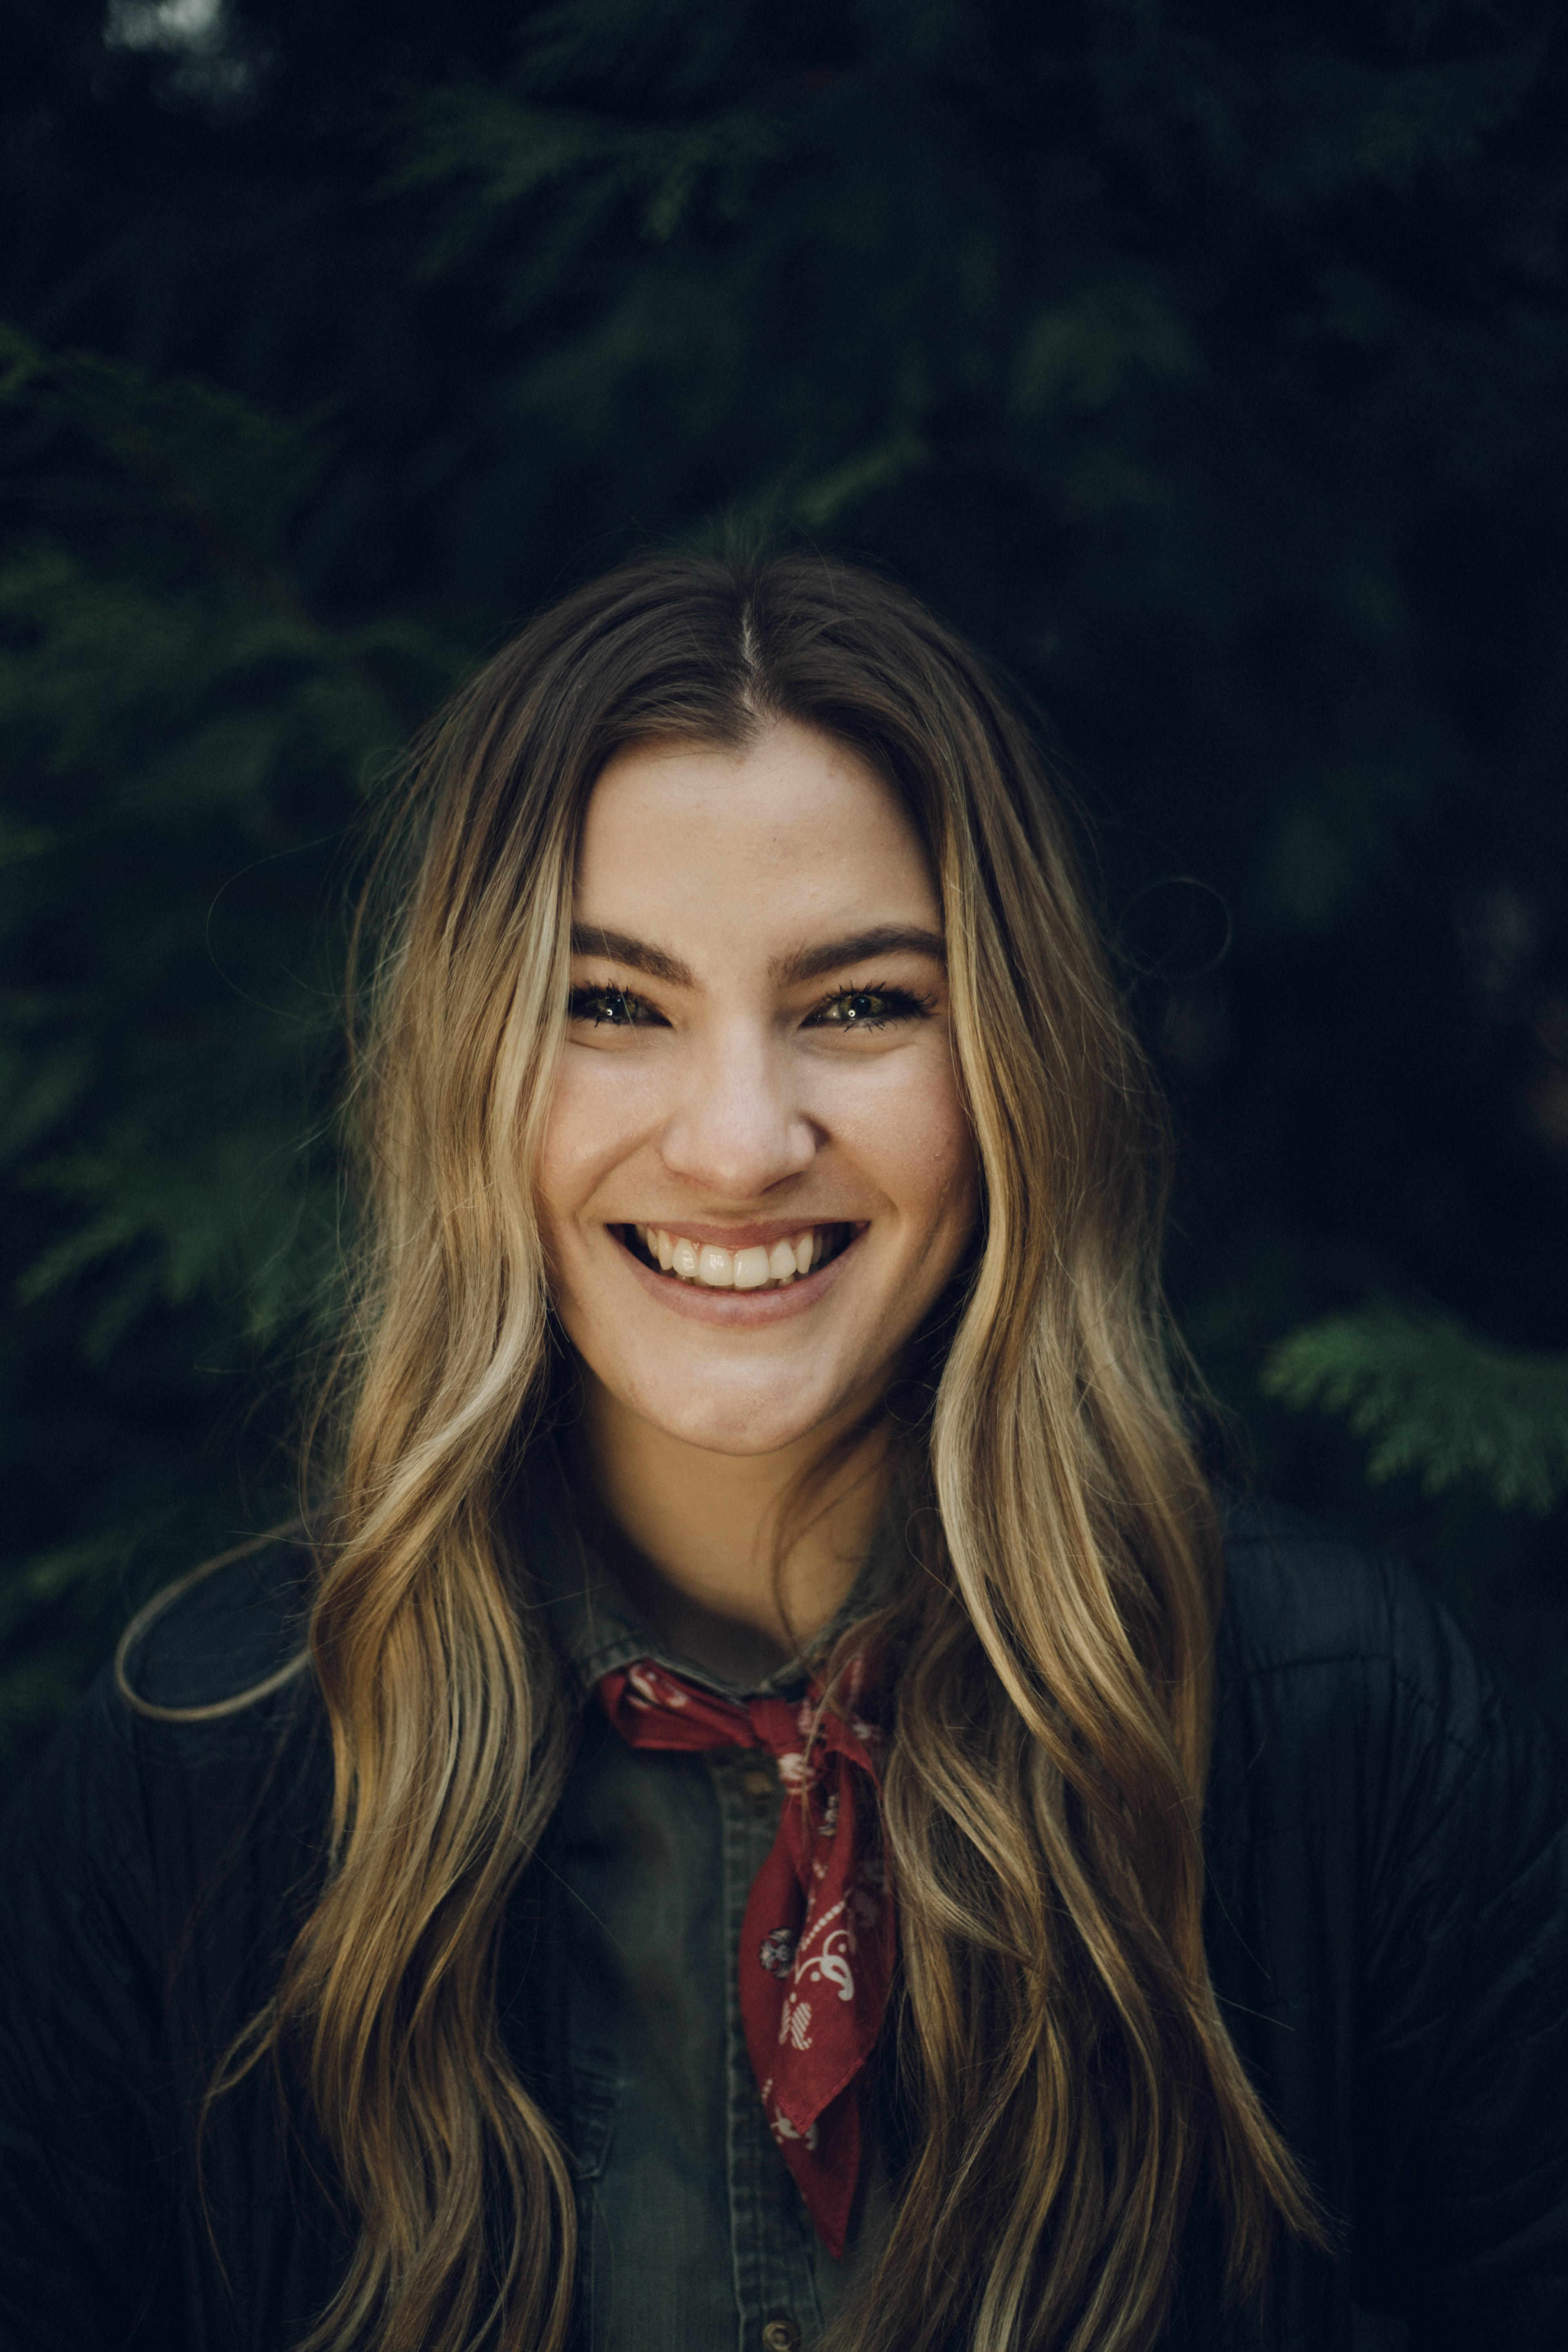 selective focus photography of smiling woman wearing button-up shirt